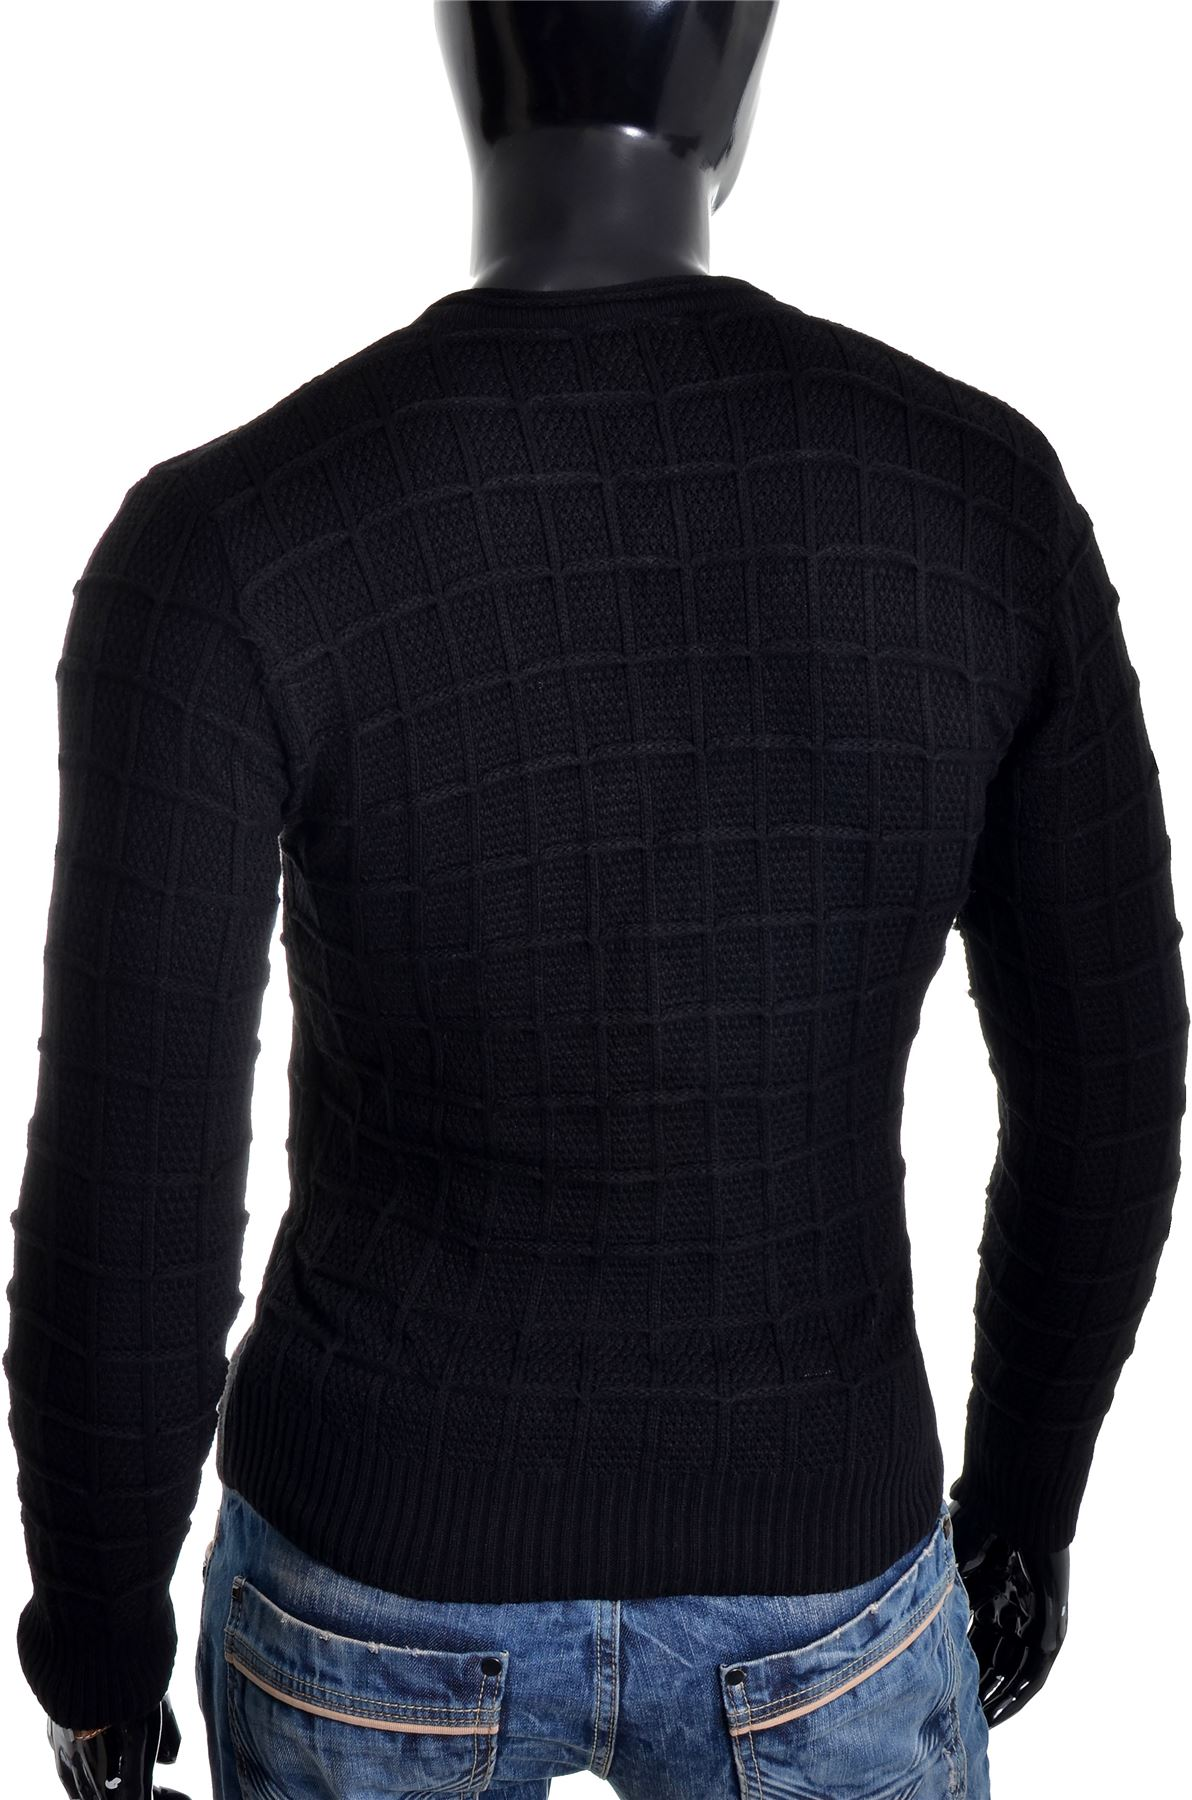 D-amp-R-Men-039-s-Wool-Jumper-Knit-Smart-Long-Sleeve-Sweater-Crew-Neck-Check-Top-Slim thumbnail 11